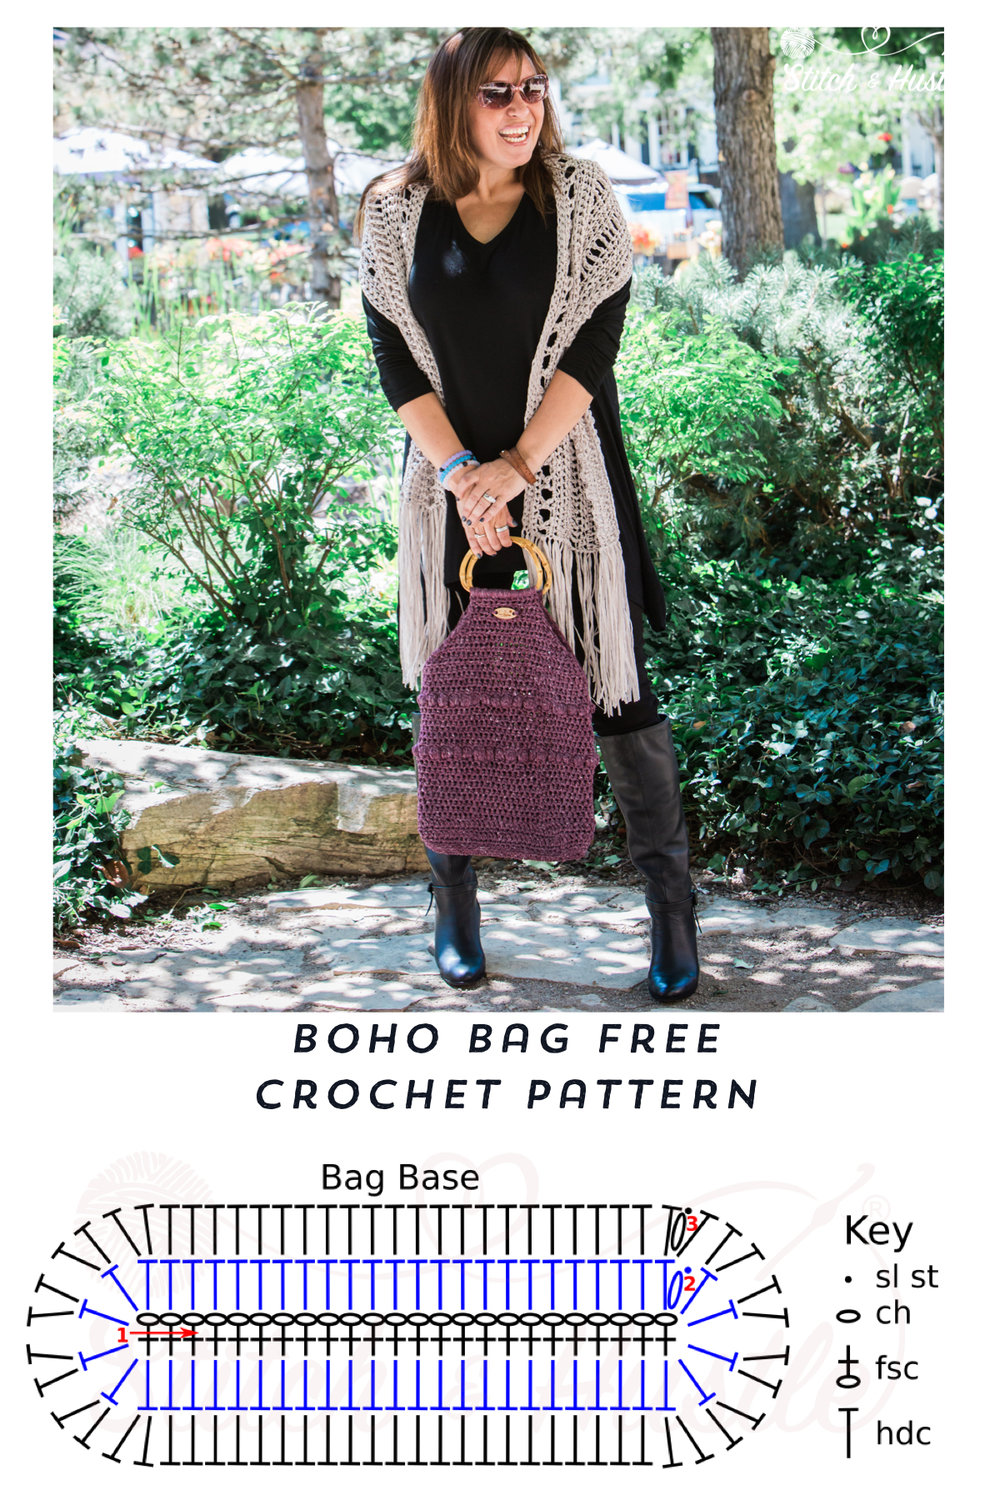 Downtown_Crochet_Bag_Free_pattern_2.jpg